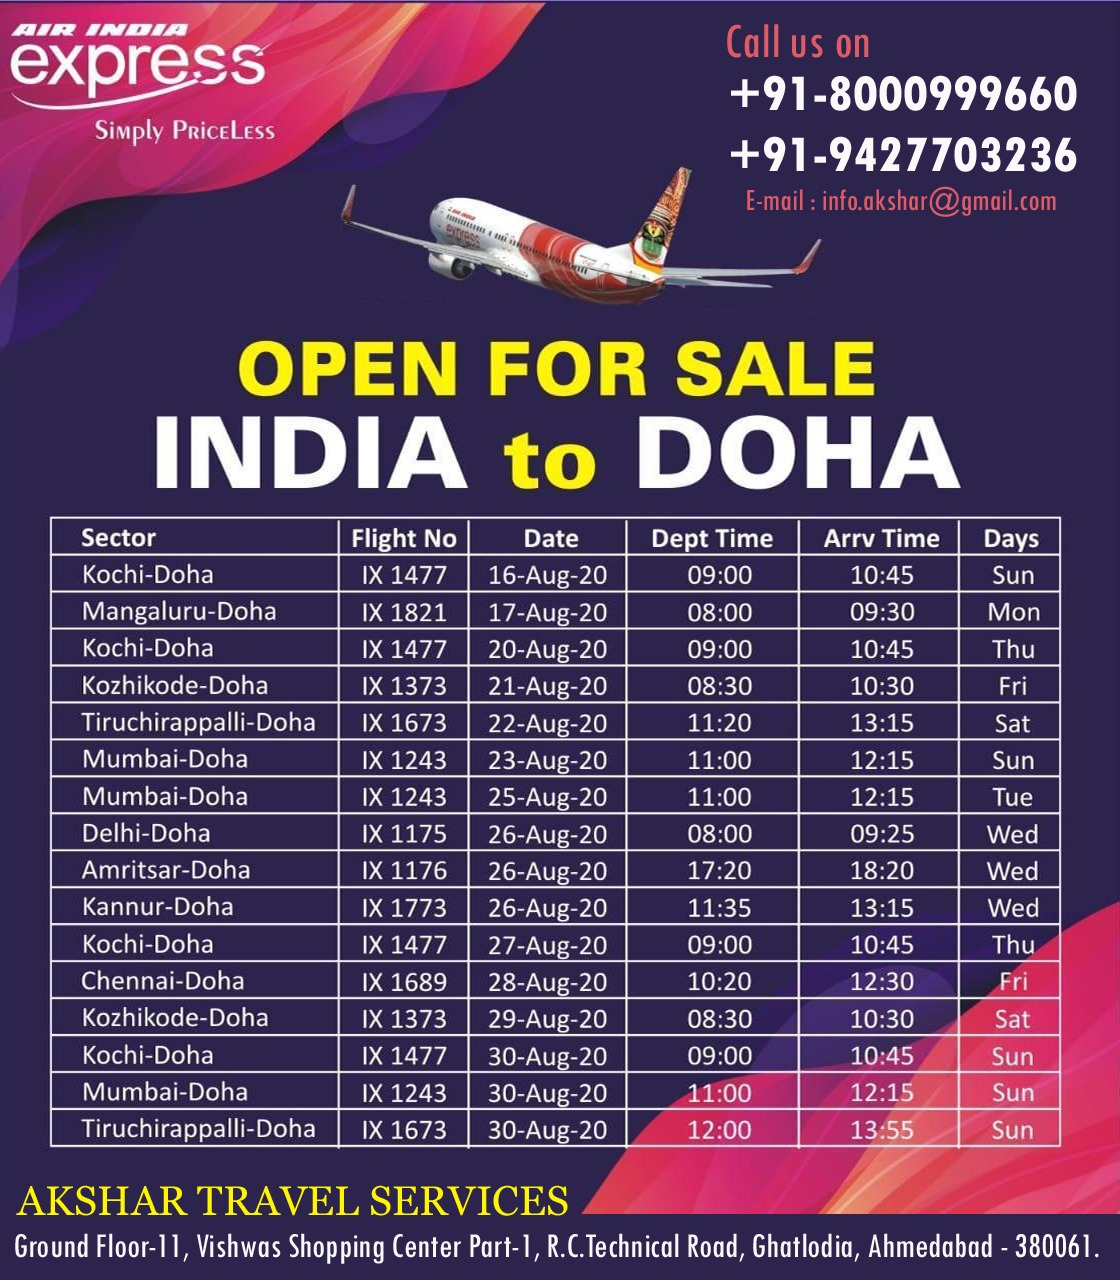 Simply Paicrl,,,  Call us a +91-8000999660 +91-9427703236 E-mail info.akshar@Amad.com —nt(4.11,41  OPEN FOR SALE INDIA to DOHA  Sector Flight No Date Dept Time Am.( Time Days Kochi-Doha IX 1477 16-Aug-20 09:00 10:45 Sun Mangaluru-Doha IX 1821 17-Aug-20 08:00 09:30 Mon Kochi-Doha IX 1477 20-Aug-20 09:00 10:45 Thu Kozhikode-Doha IX 1373 21-Aug-20 08:30 10:30 Fri Tiruchirappalli-Doha IX 1673 22-Aug-20 11:20 13:15 Sat Mumbai-Doha IX 1243 23-Aug-20 11:00 12:15 Sun Mumbai-Doha IX 1243 25-Aug-20 11:00 12:15 Tue Delhi-Doha IX 1175 26-Aug-20 08:00 09:25 Wed Amritsar-Doha IX 1176 26-Aug-20 17:20 18:20 Wed Kannur-Doha IX 1773 26-Aug-20 11:35 13:15 Wed Kochi-Doha IX 1477 27-Aug-20 09:00 10:45 Thu Chennai-Doha IX 1689 28-Aug-20 10:20 12:30 Fri Kozhikode-Doha IX 1373 29-Aug-20 08:30 10:30 Sat Kochi-Doha IX 1477 30-Aug-20 09:00 10:45 Sun Mumbai-Doha IX 1243 30-Aug-20 11:00 12:15 Sun Tiruchirappalli-Doha IX 1673 30-Aug-20 12:00 13:55 Sun  AKSHAR TRAVEL SERVICES Ground Floor-11, Vishwas Shopping Center Part-1, R.C.Technical Road, Ghatlodia, Ahmedabad - 380061.